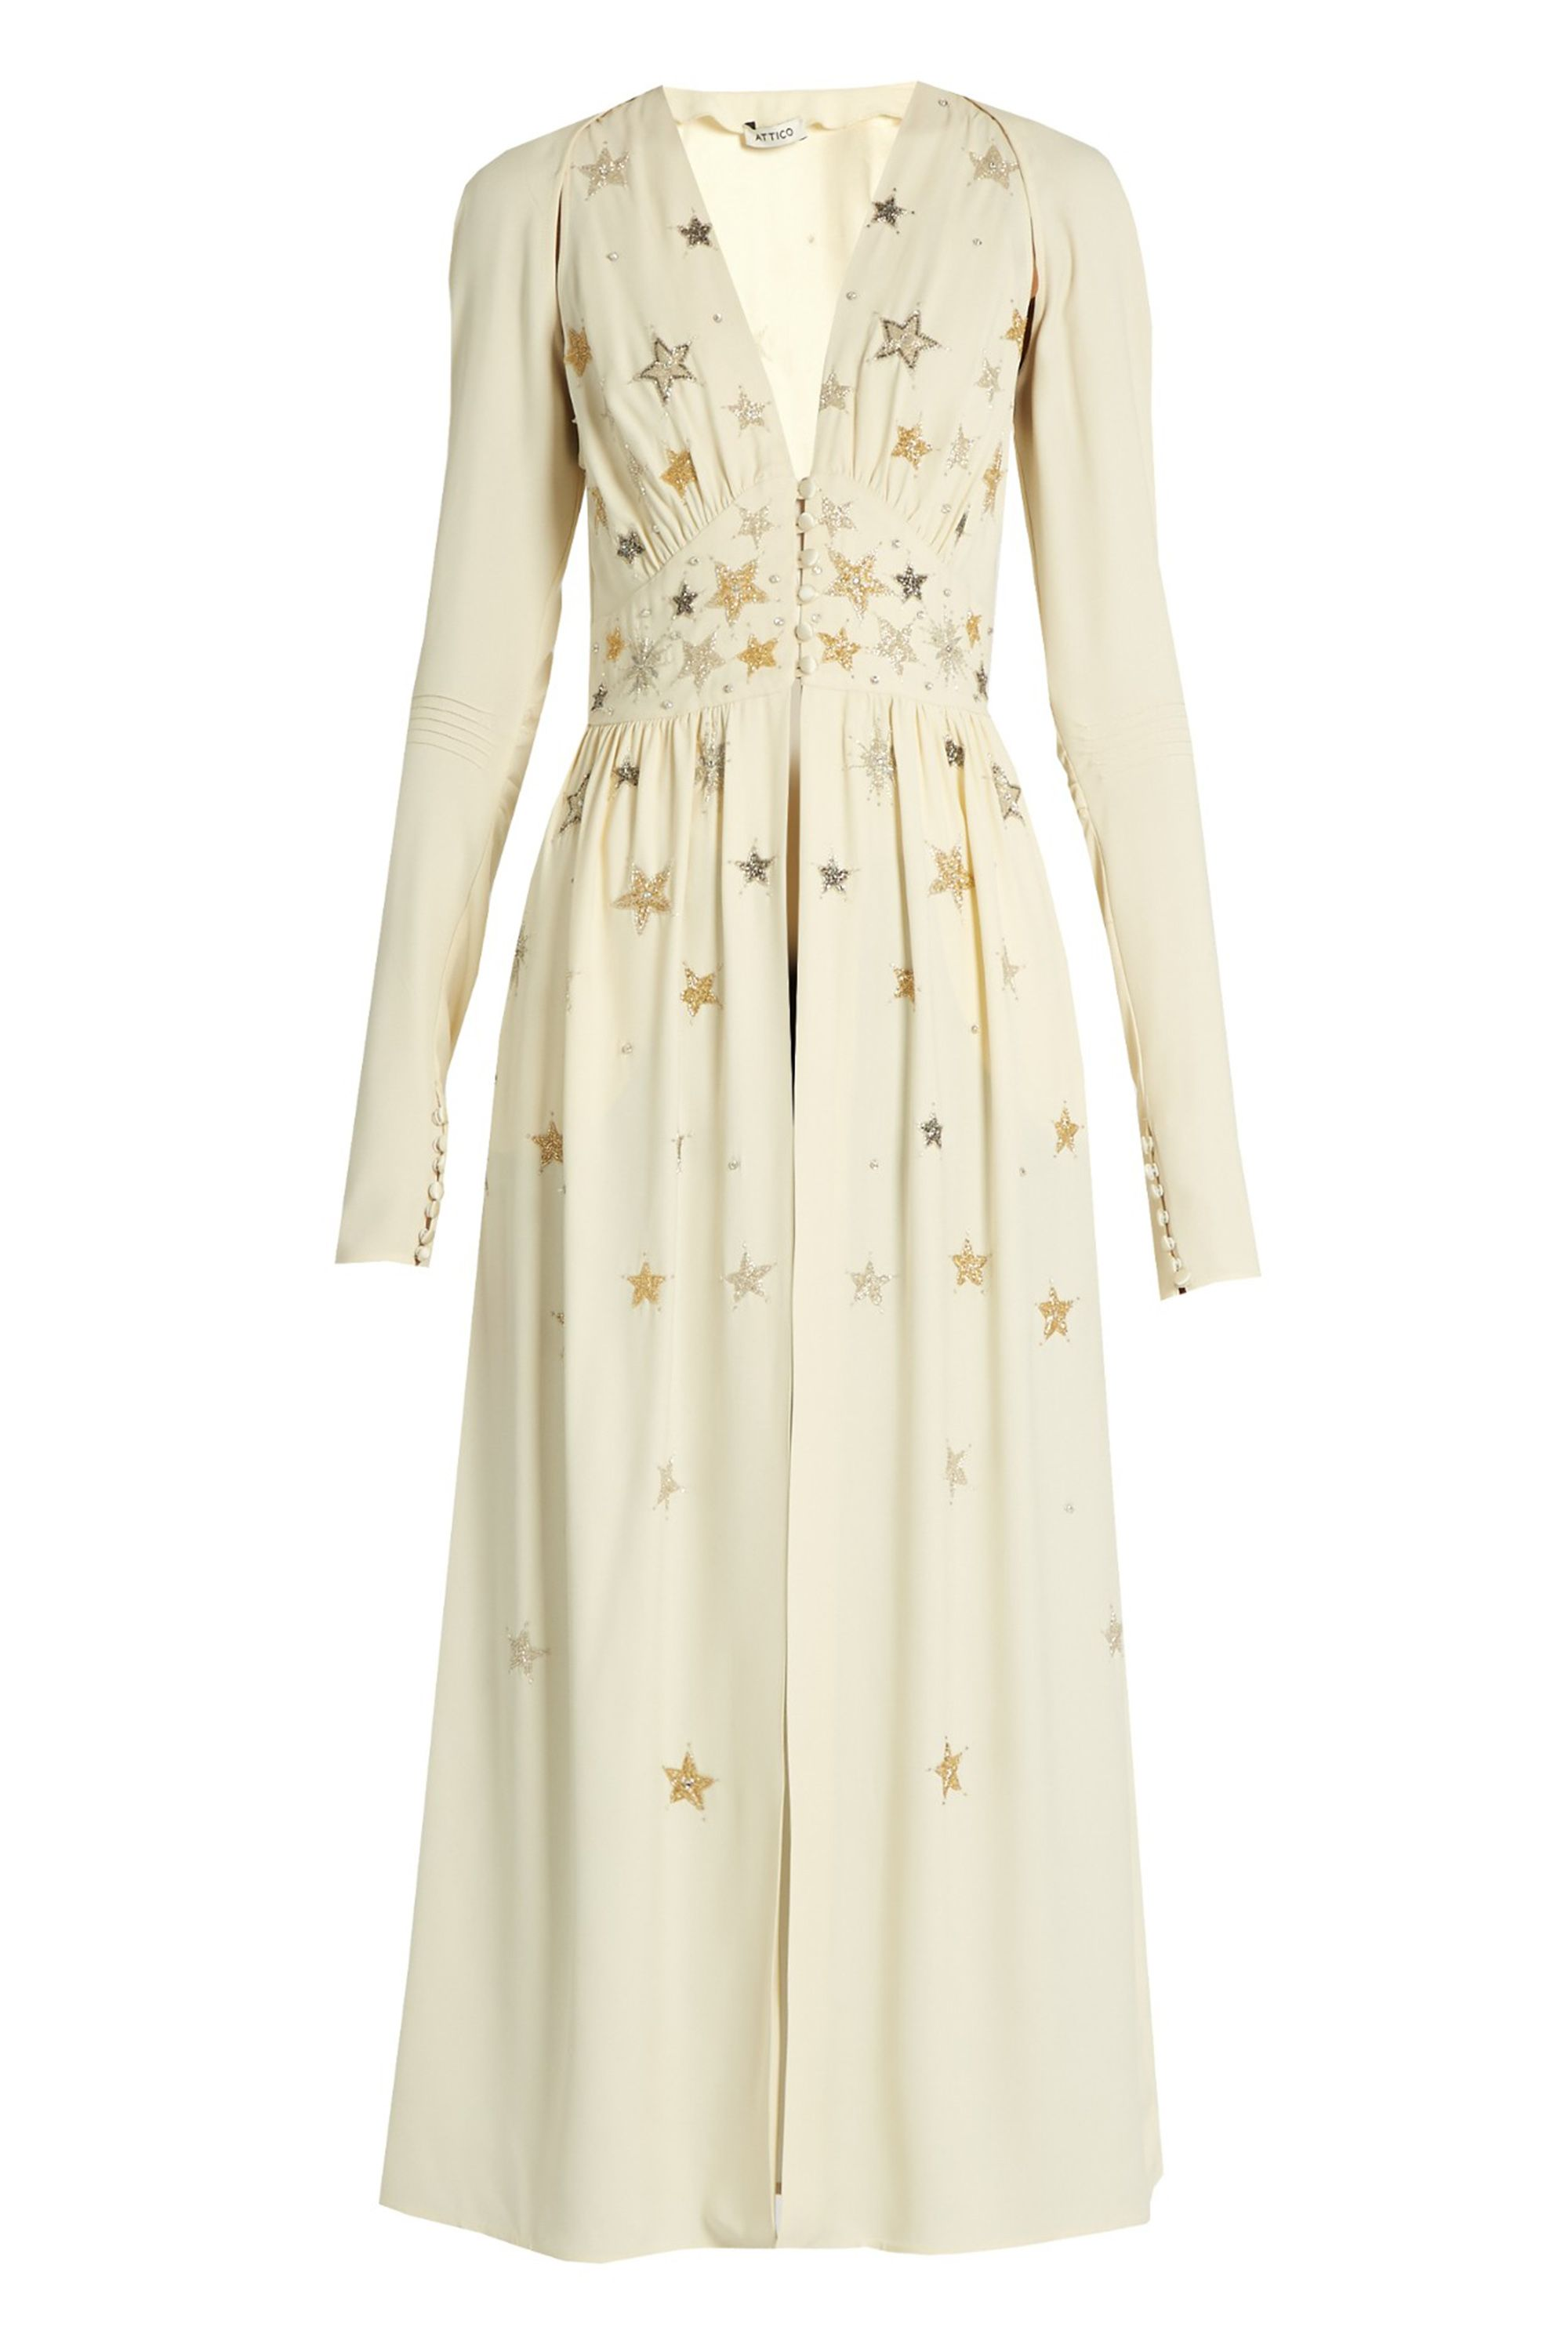 "<p>Attico Cher Star-Embellished Crepe Dress, $1,235; <a href=""http://www.matchesfashion.com/us/products/Attico-Cher-star-embellished-crepe-dress-1067541"" target=""_blank"">matchesfashion.com</a></p>"